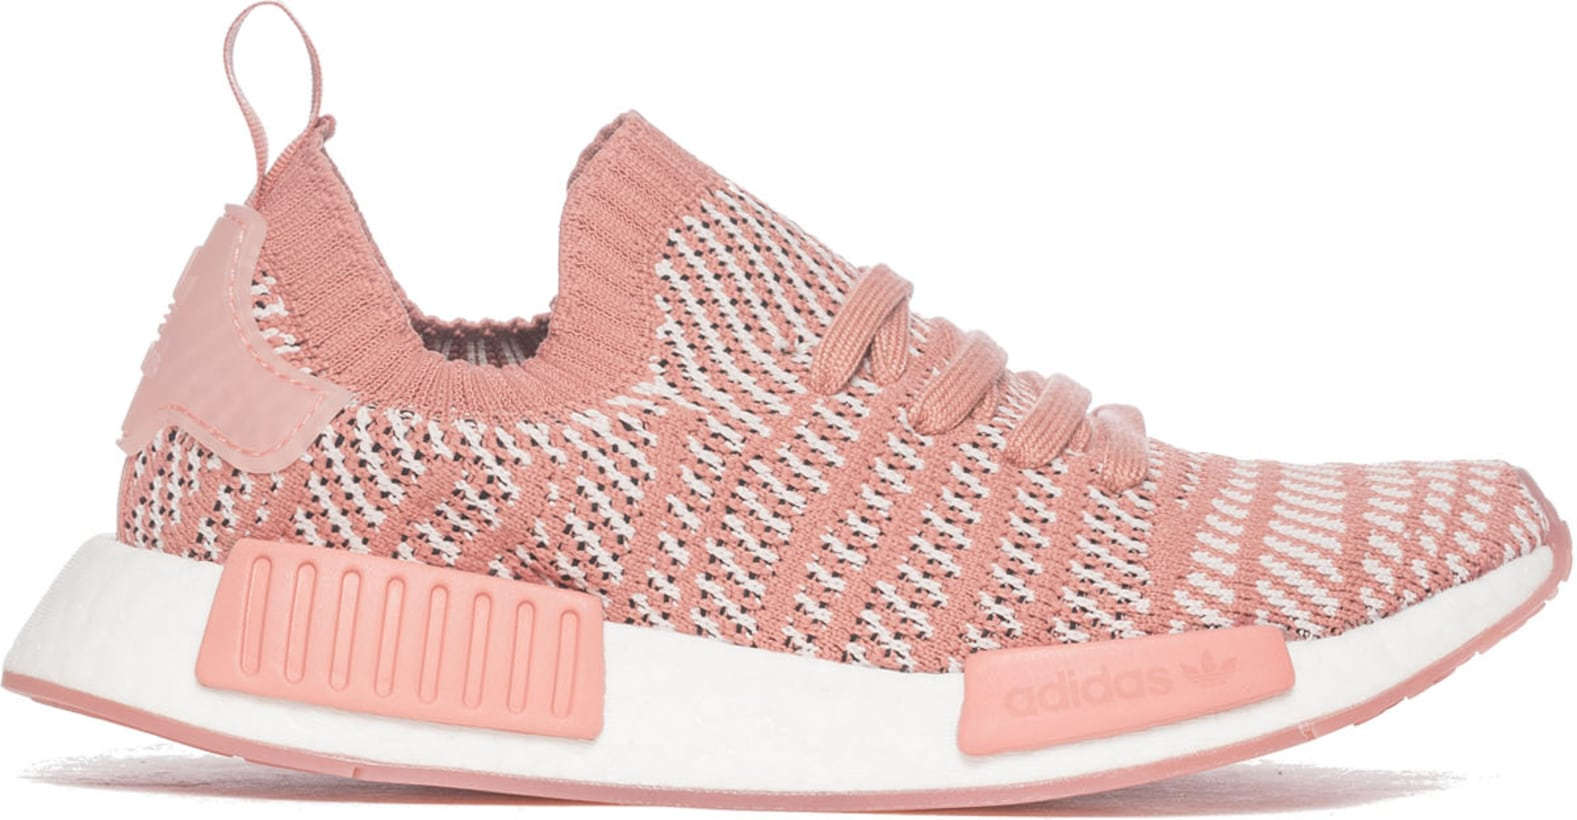 6e2fe85a5 adidas Originals  NMD R1 STLT Primeknit - Ash Pink Orchid Tint White ...